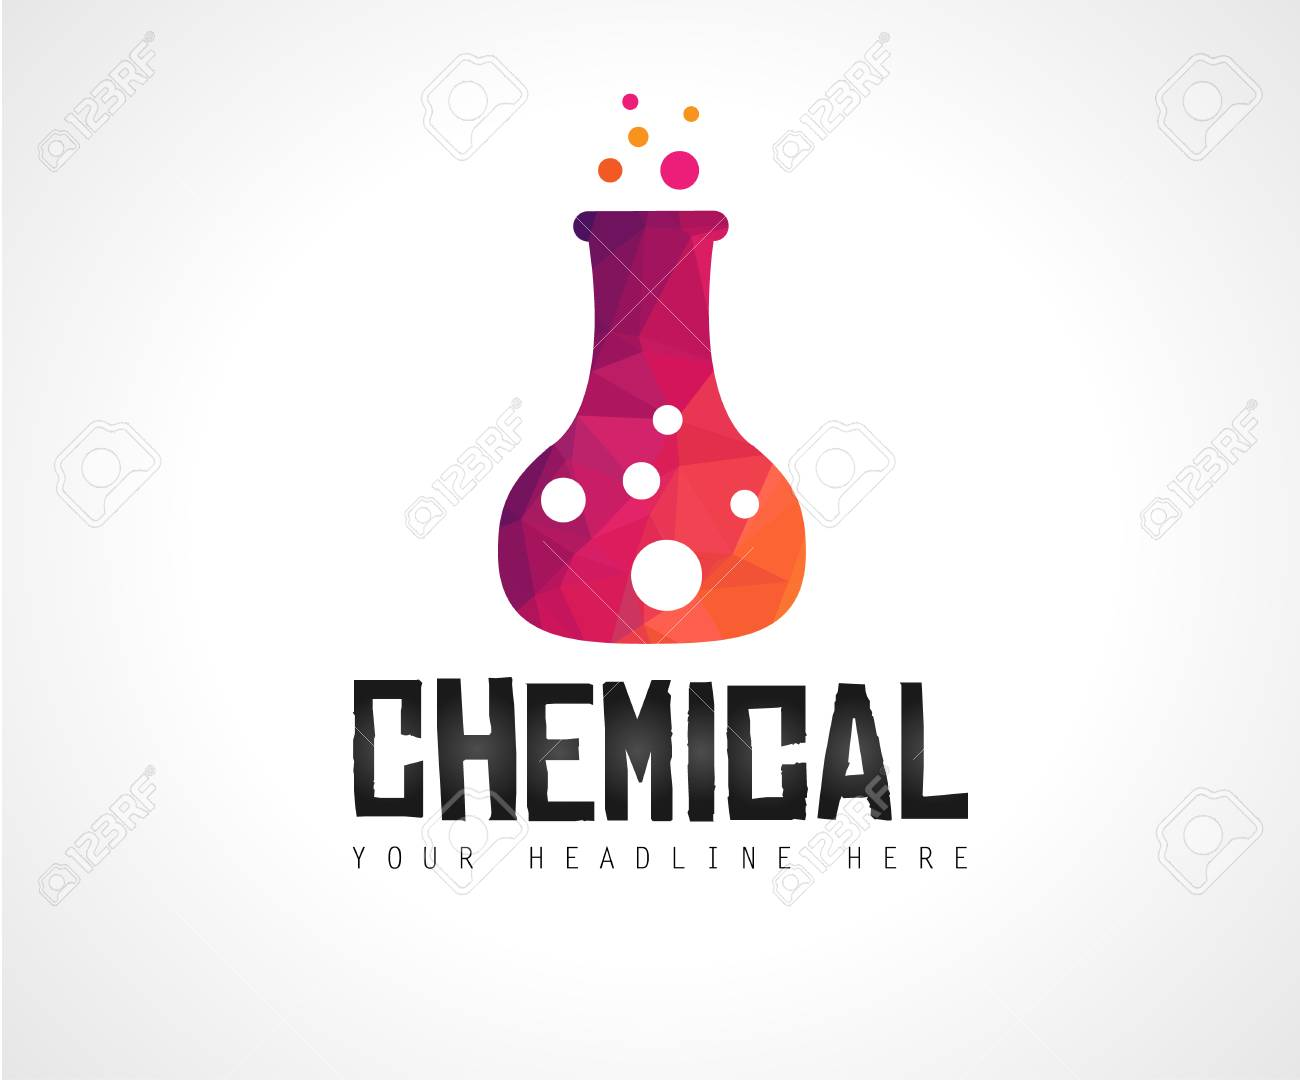 Creative Chemical Colorful Logo Design For Brand Identity Company Profile Or Corporate Logos With Clean